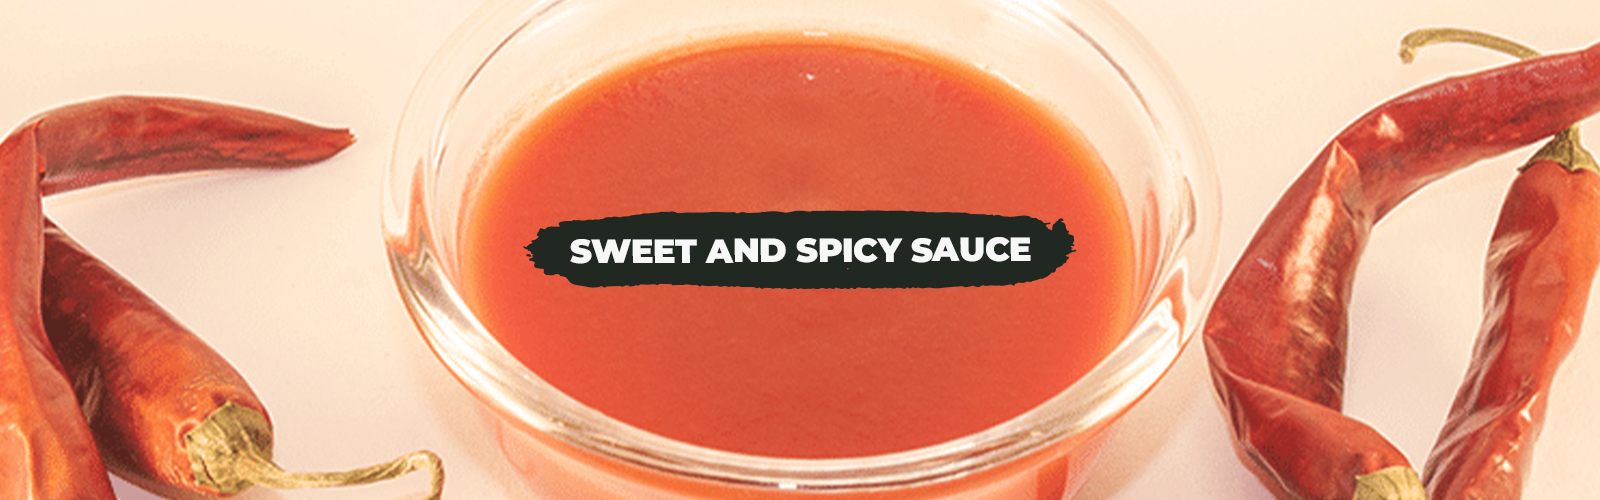 Sweet and Spicy Sauce